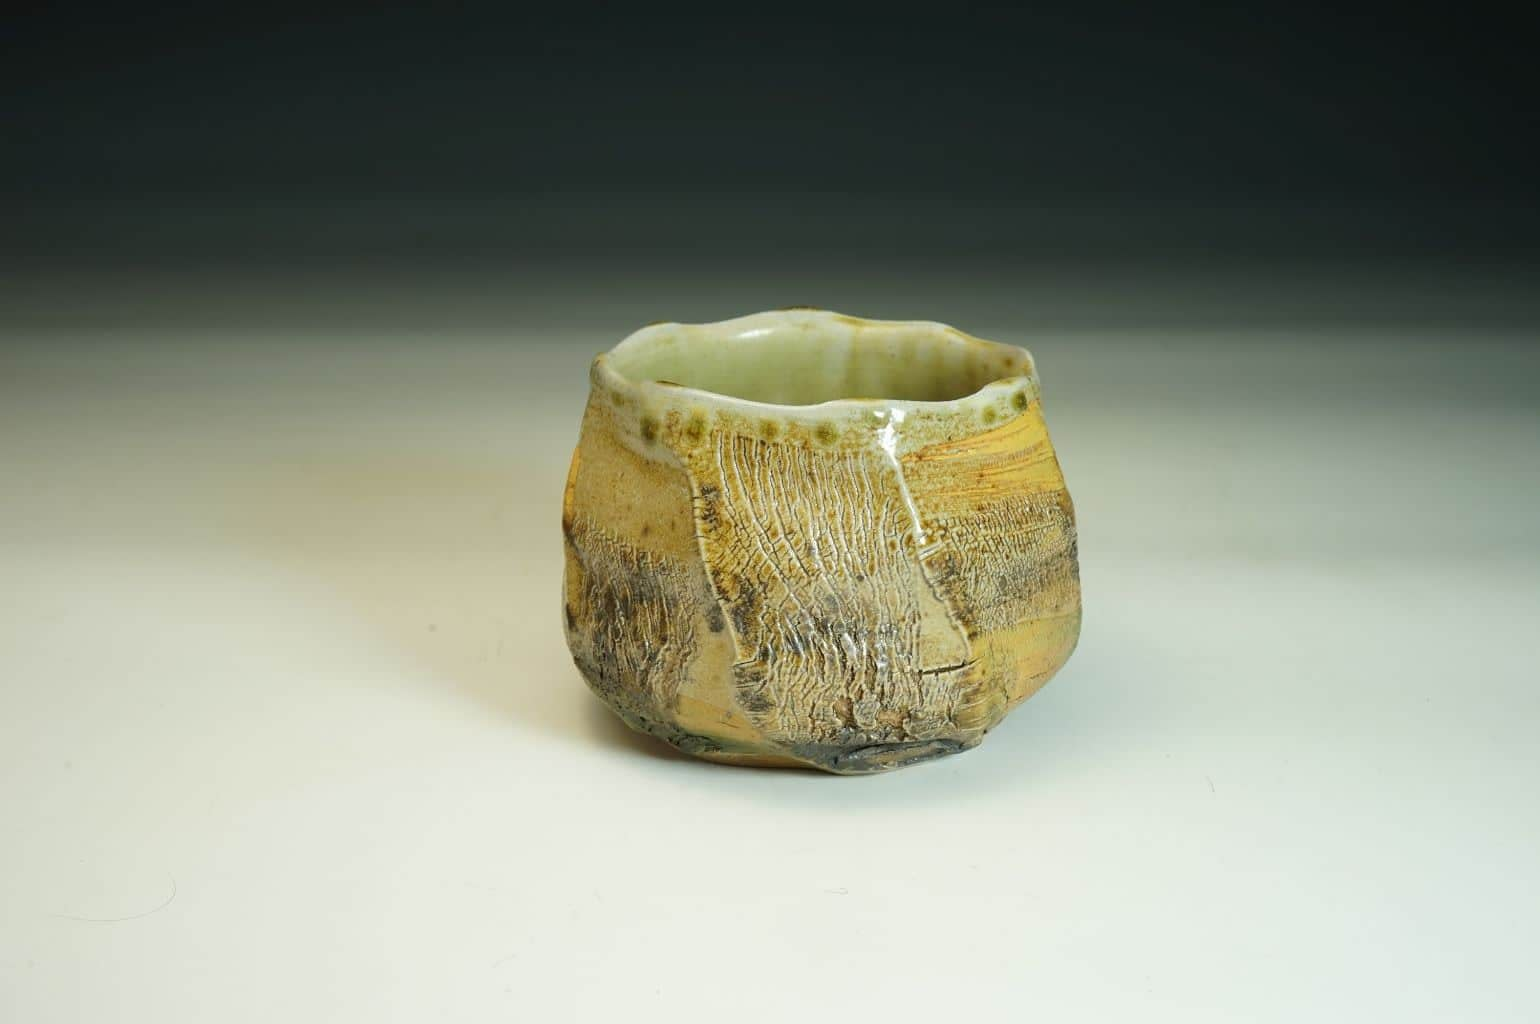 No. 17. Chawan wood-fired tea bowl with delicate crackle surface